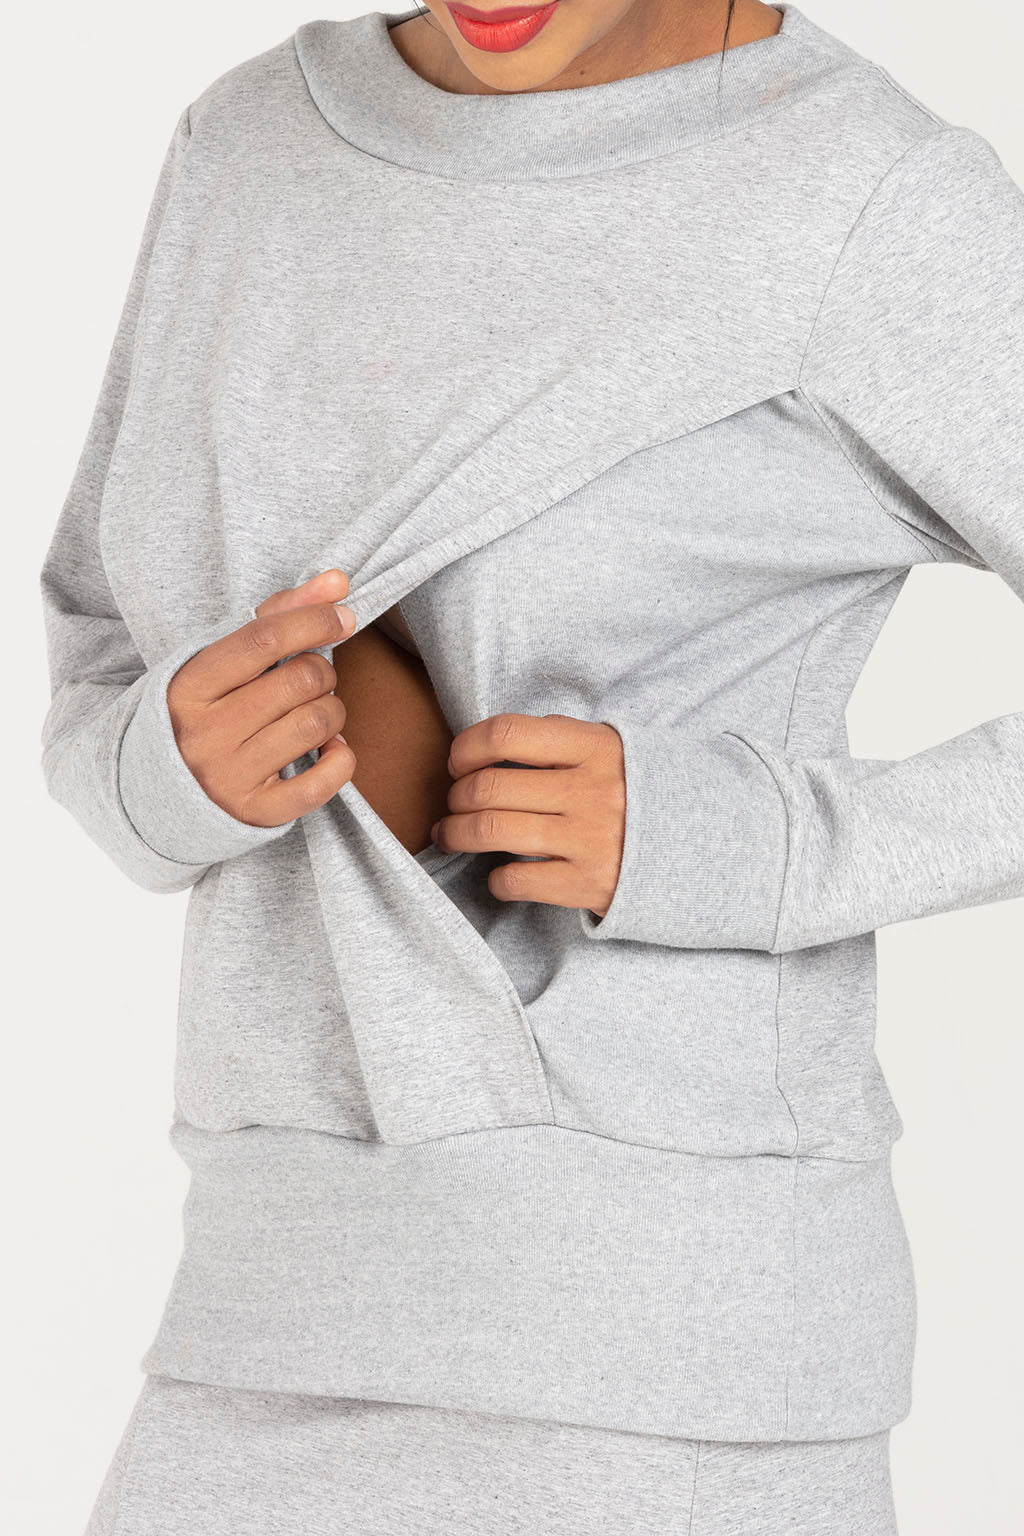 Sarka London - Sulis Sweatshirt